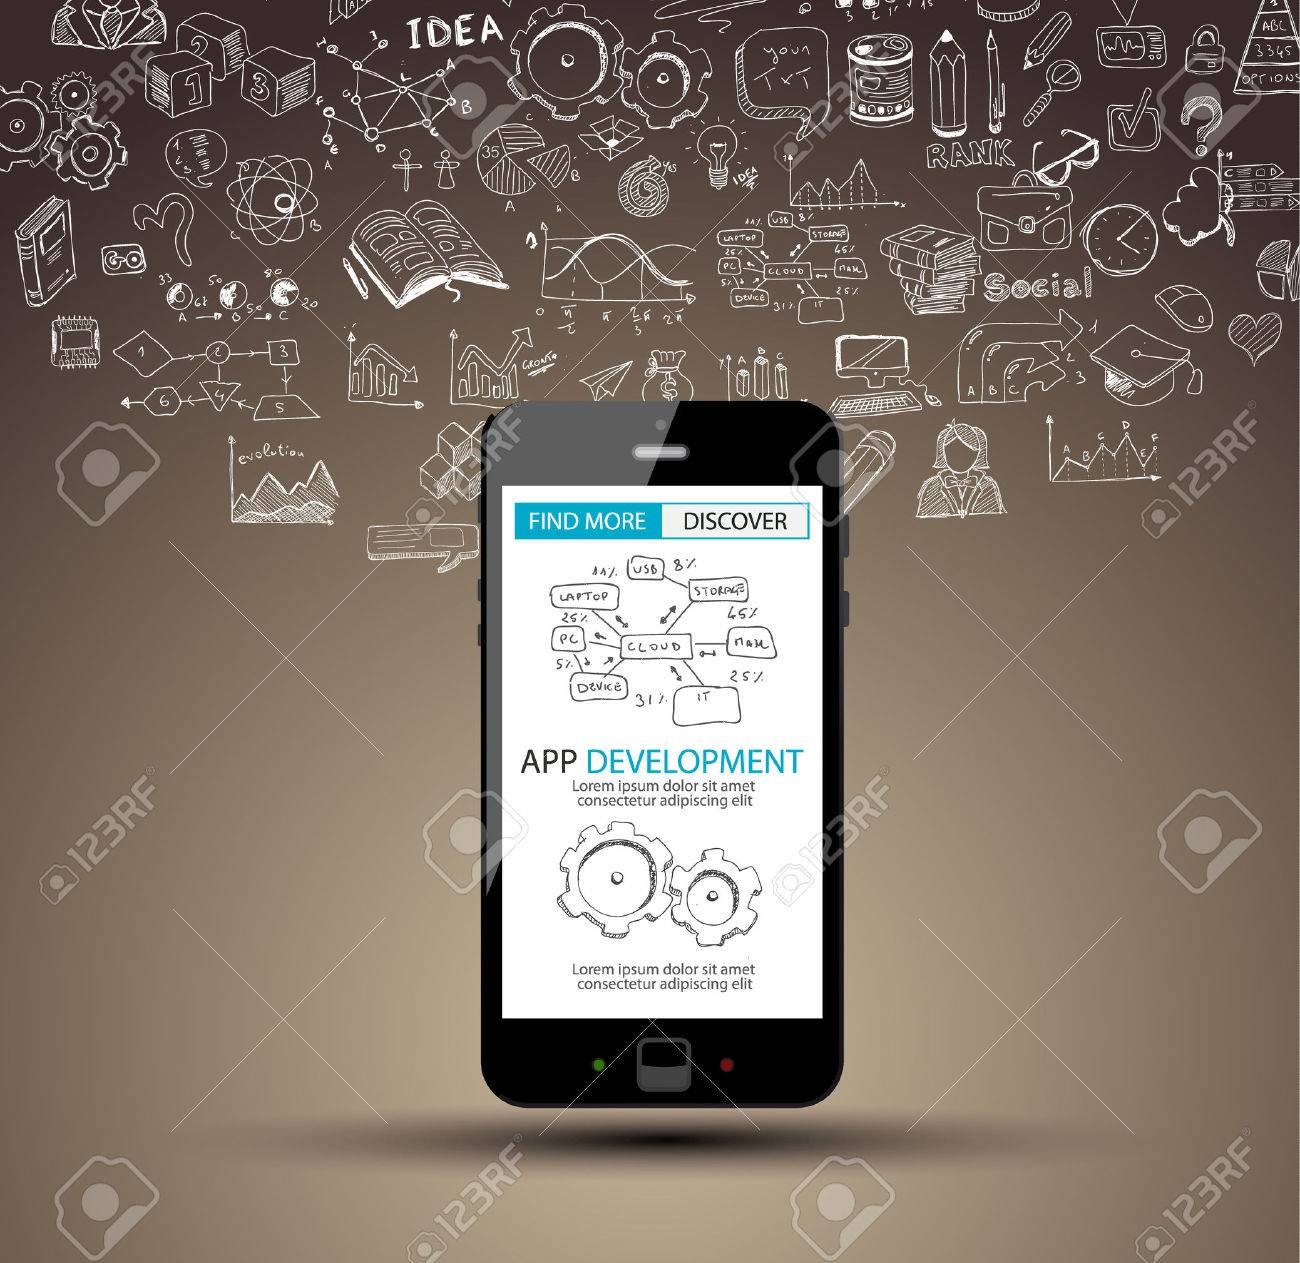 App Development Concept Background with Doodle design style :user interfaces, UI design,mobiel devices. Modern style illustration for web banners, brochure and flyers. - 54920674